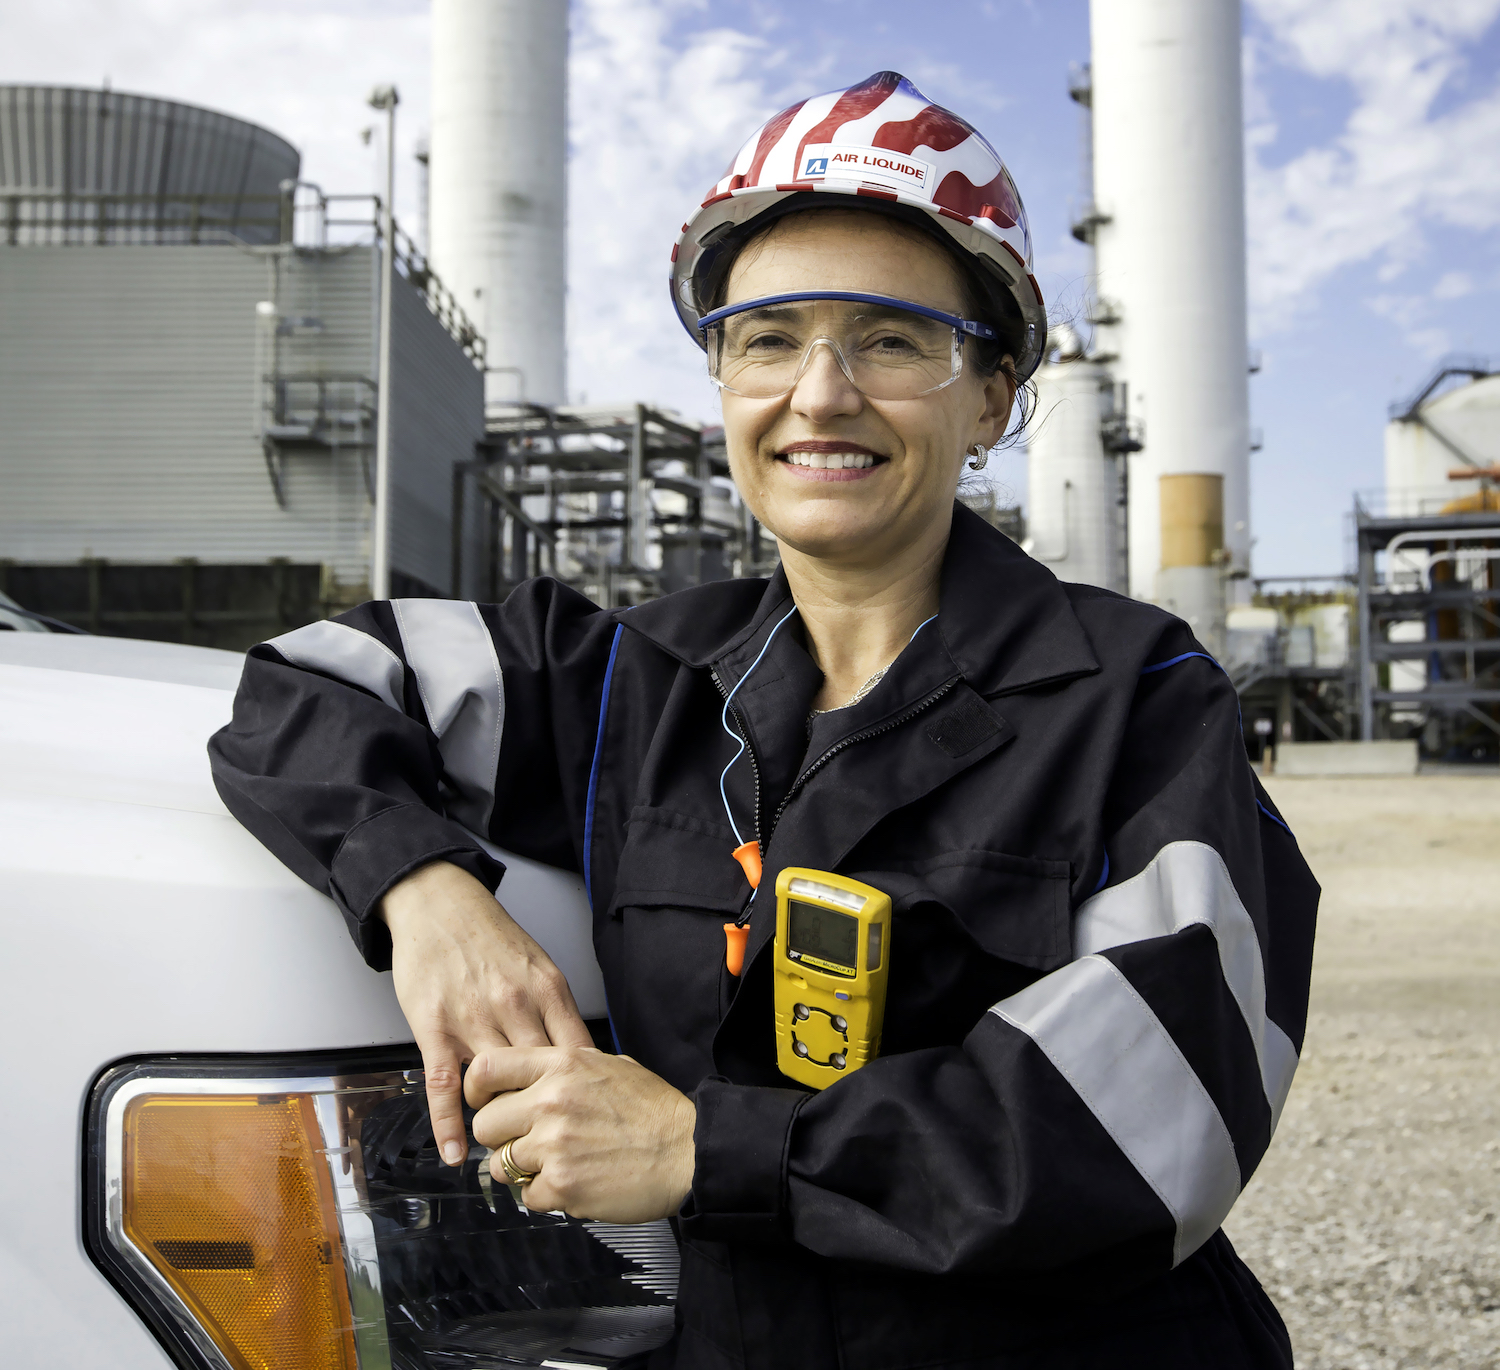 Long underrepresented in manufacturing, today's women are